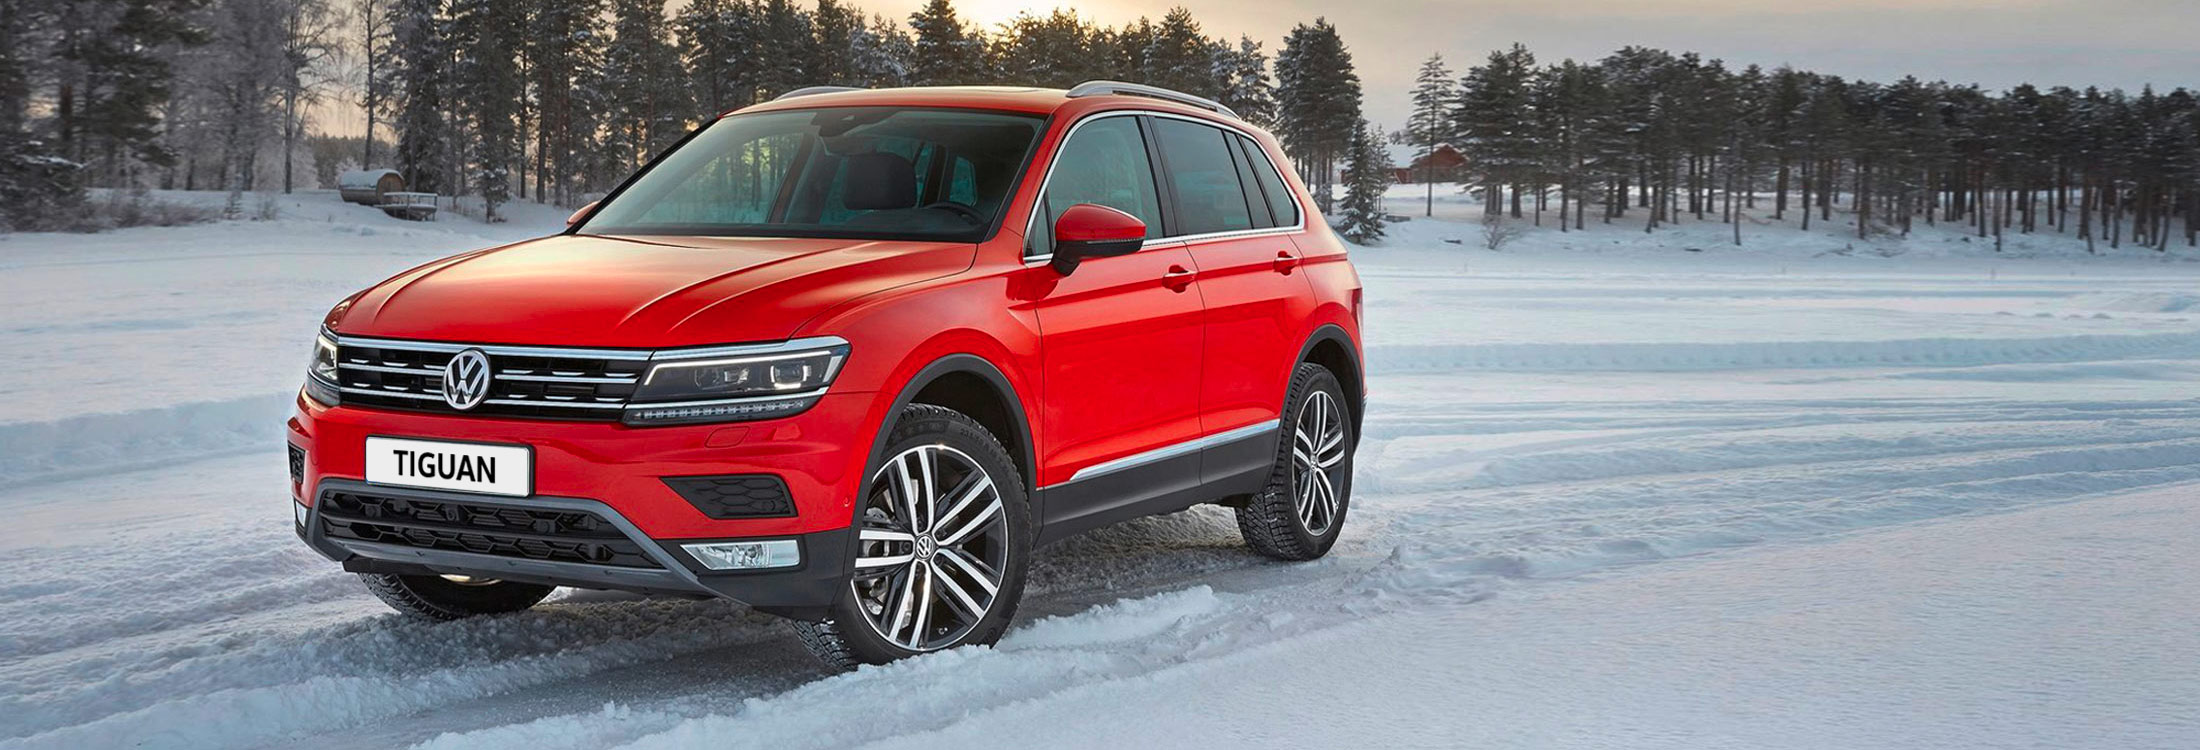 Tiguan Fleet Offer